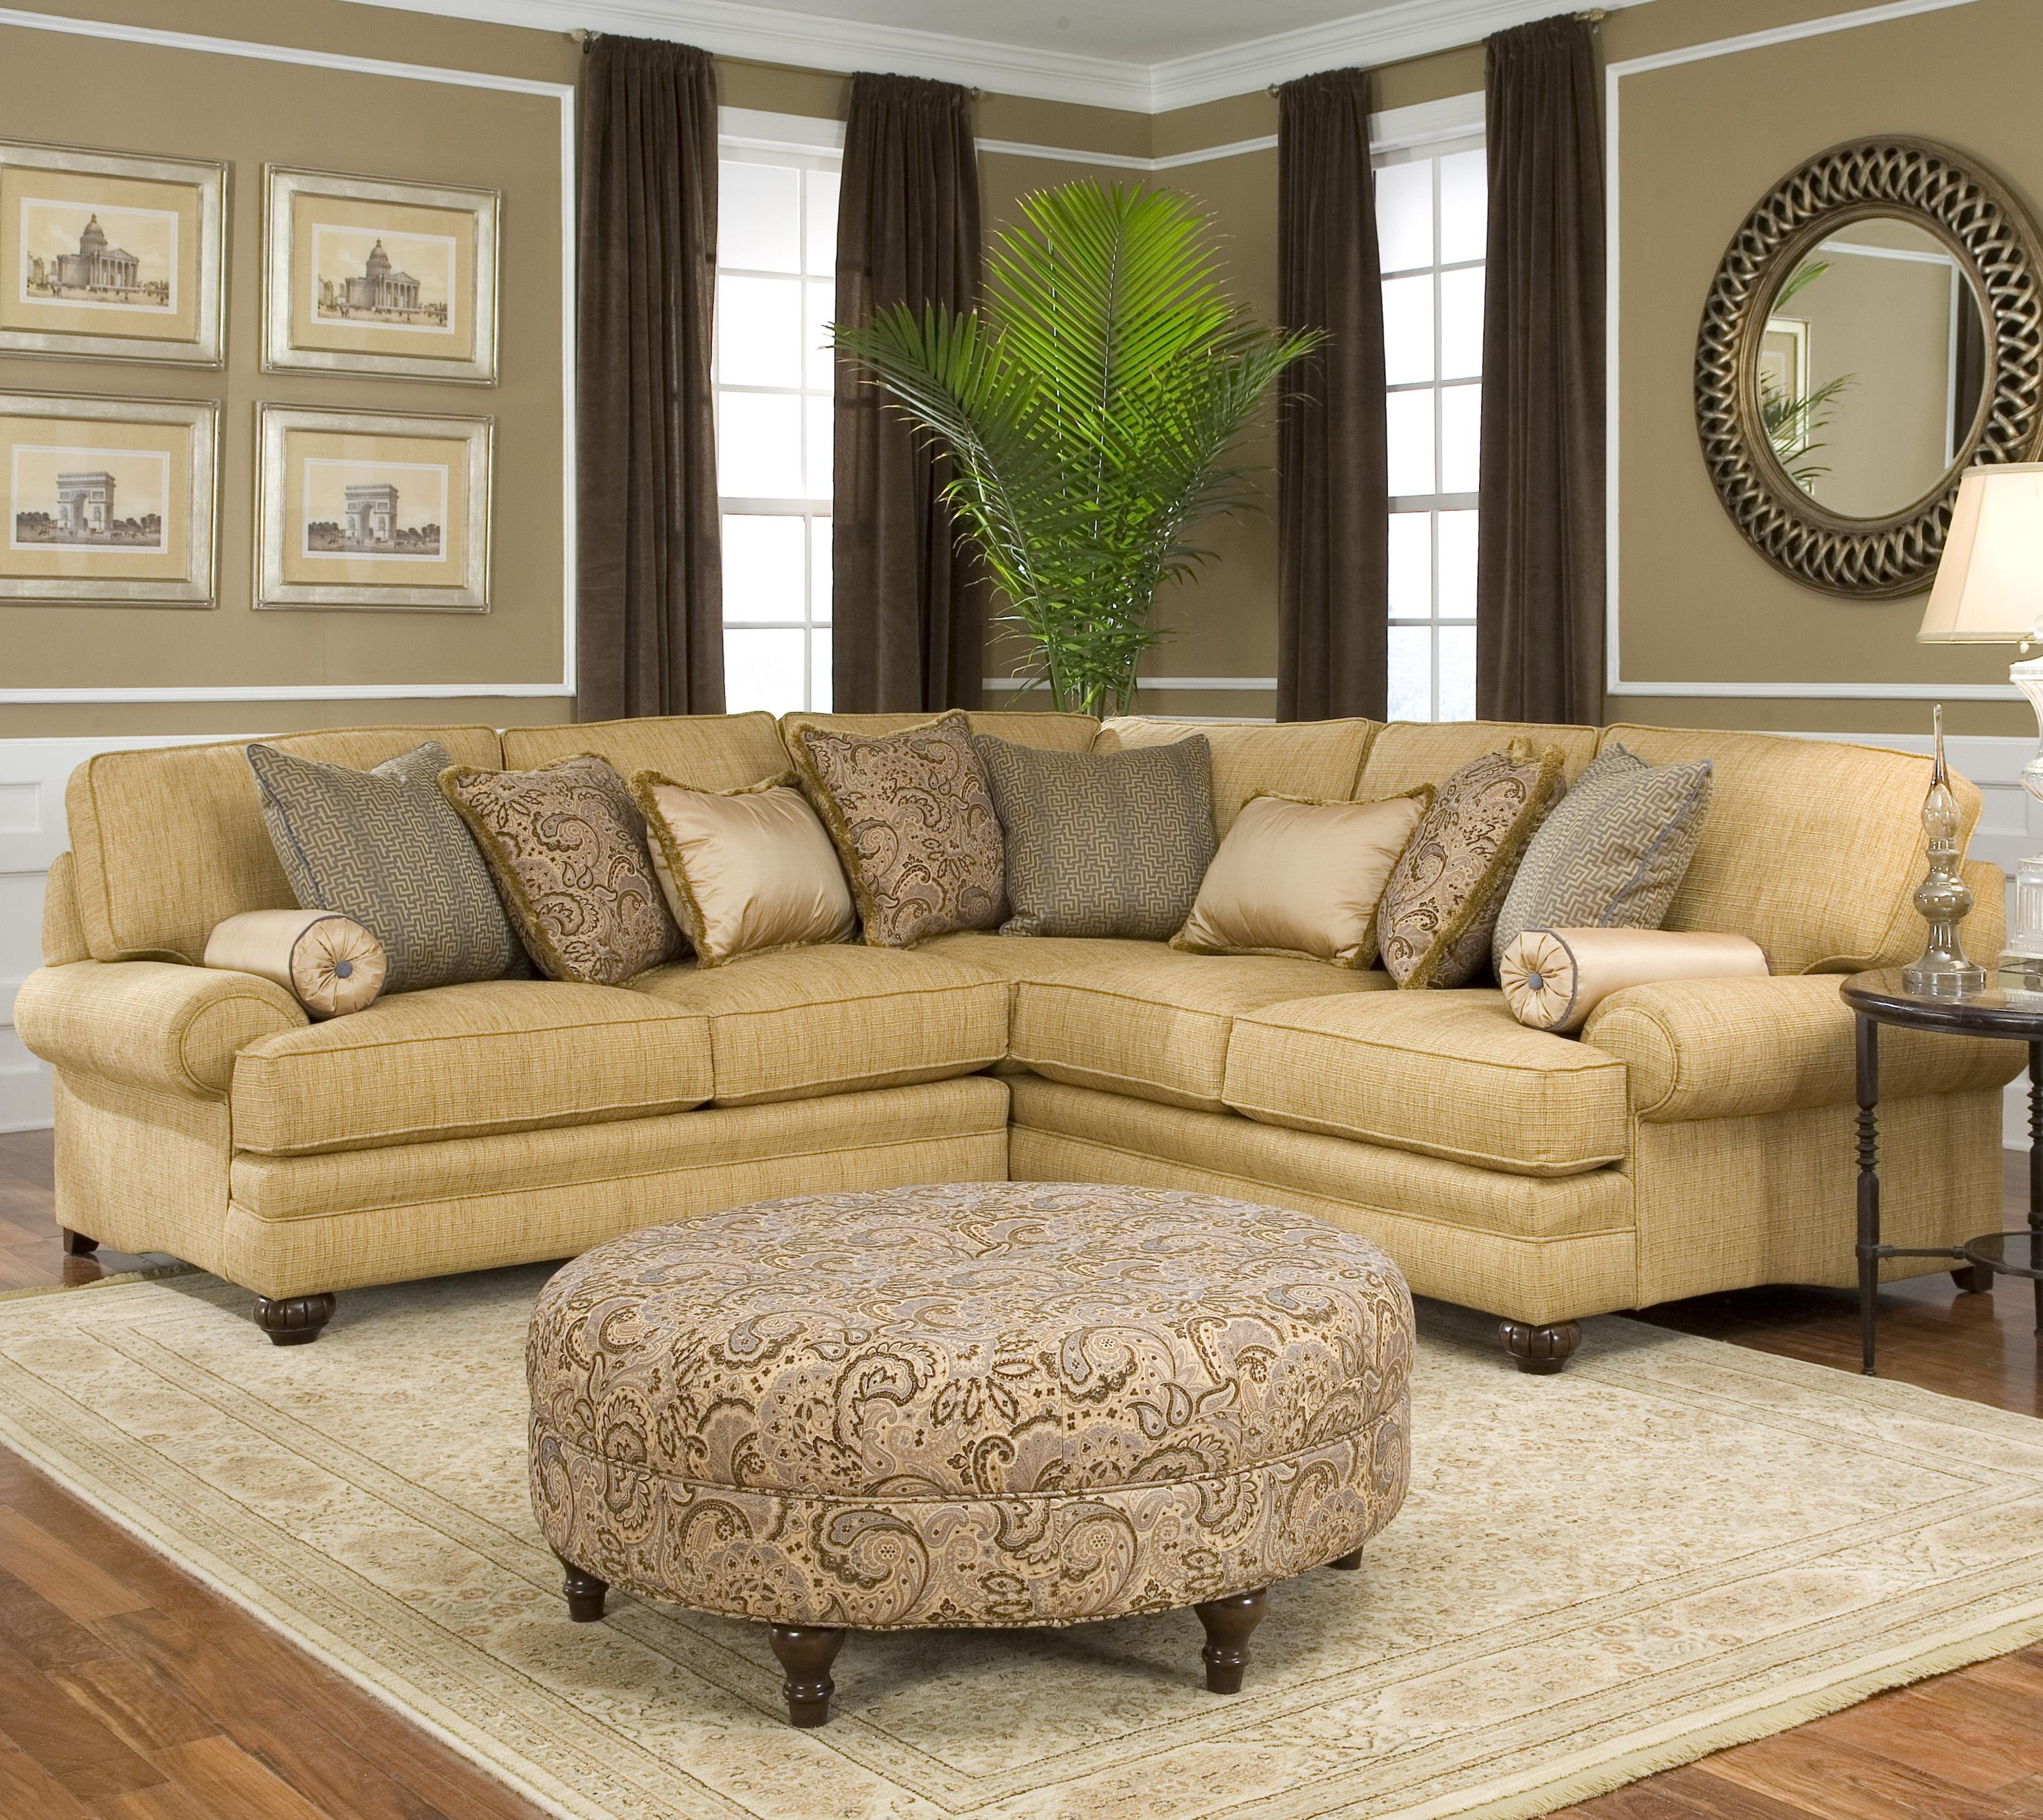 Traditional Styled Corner Sectional Sofa by Smith Brothers